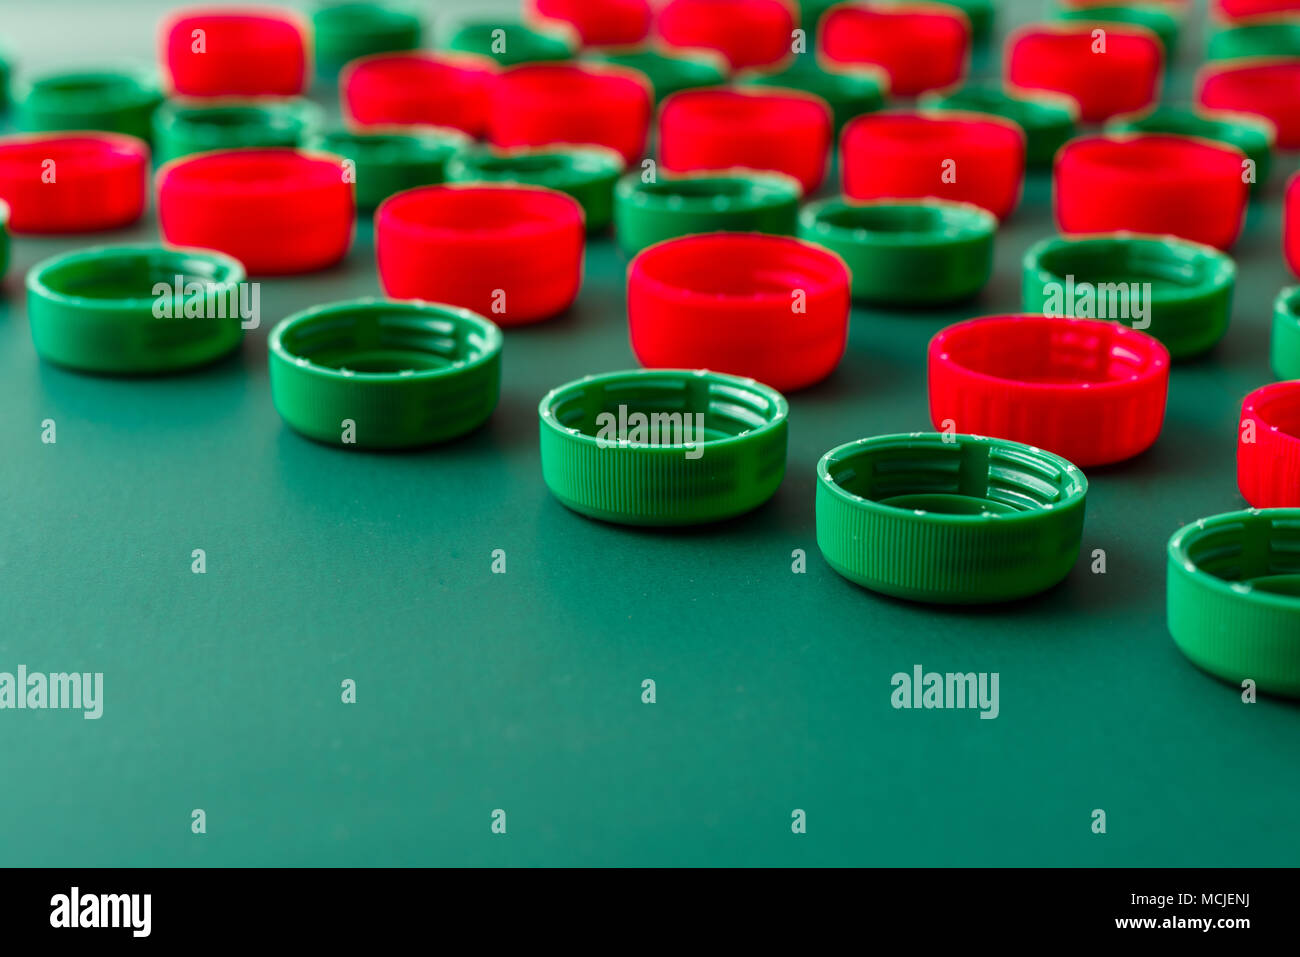 red and green plastic covers from PET bottles - Stock Image